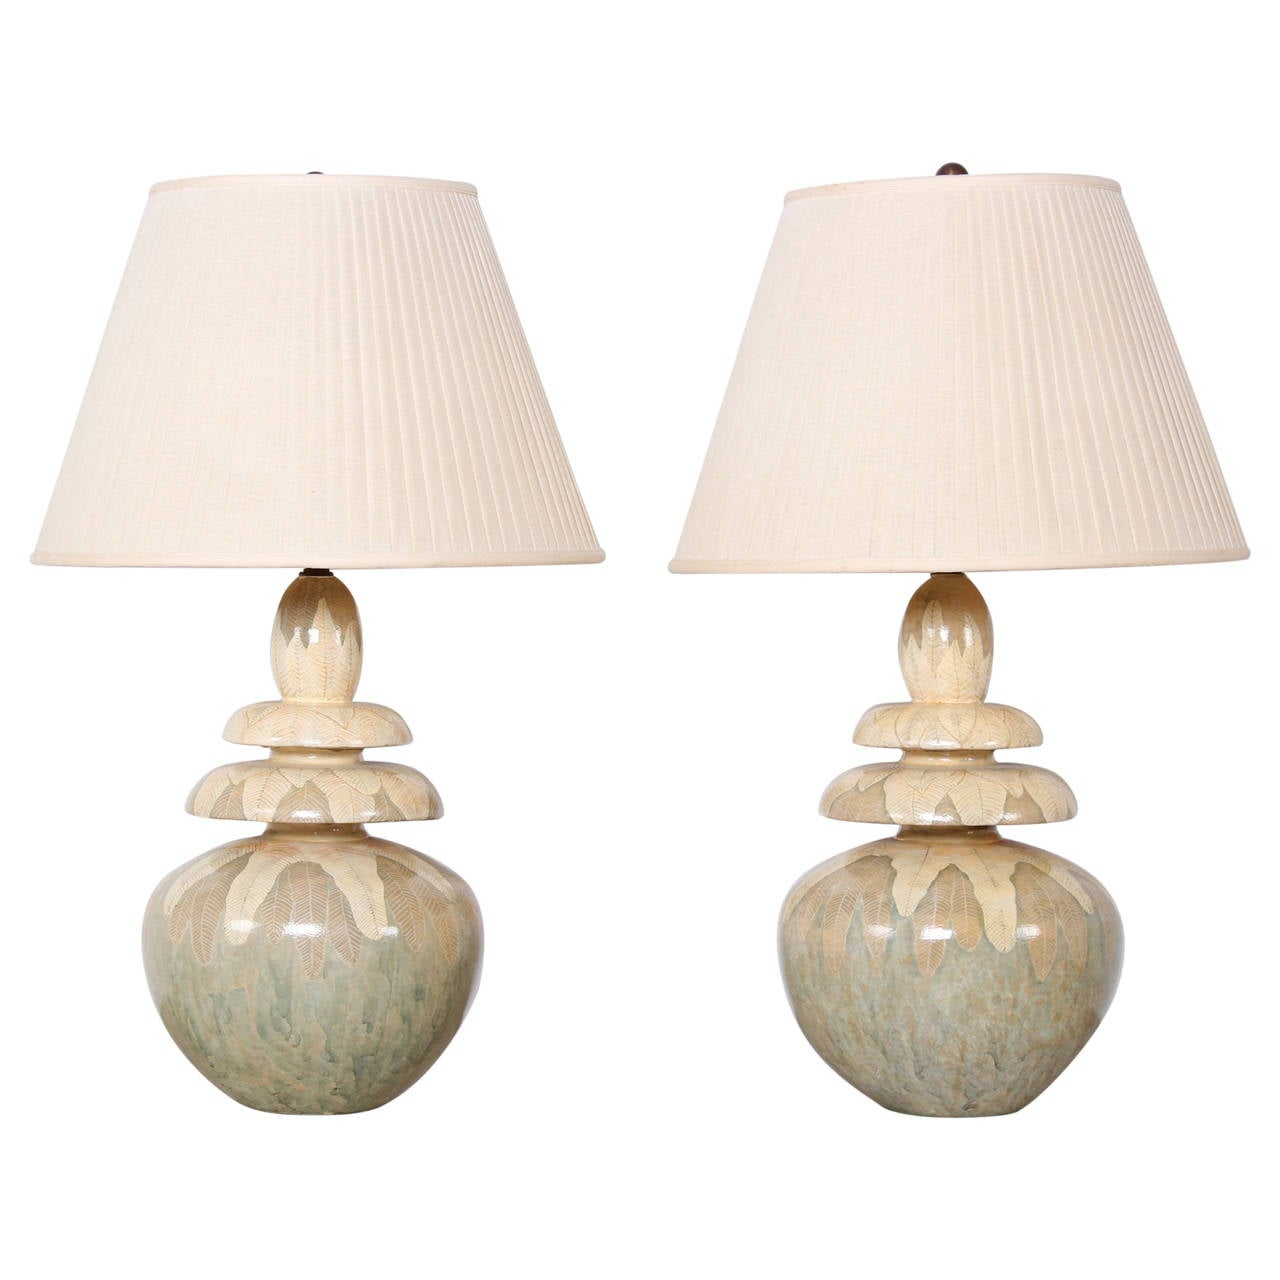 Pair of hand painted table lamps by parish hadley at 1stdibs pair of hand painted table lamps by parish hadley 1 geotapseo Gallery